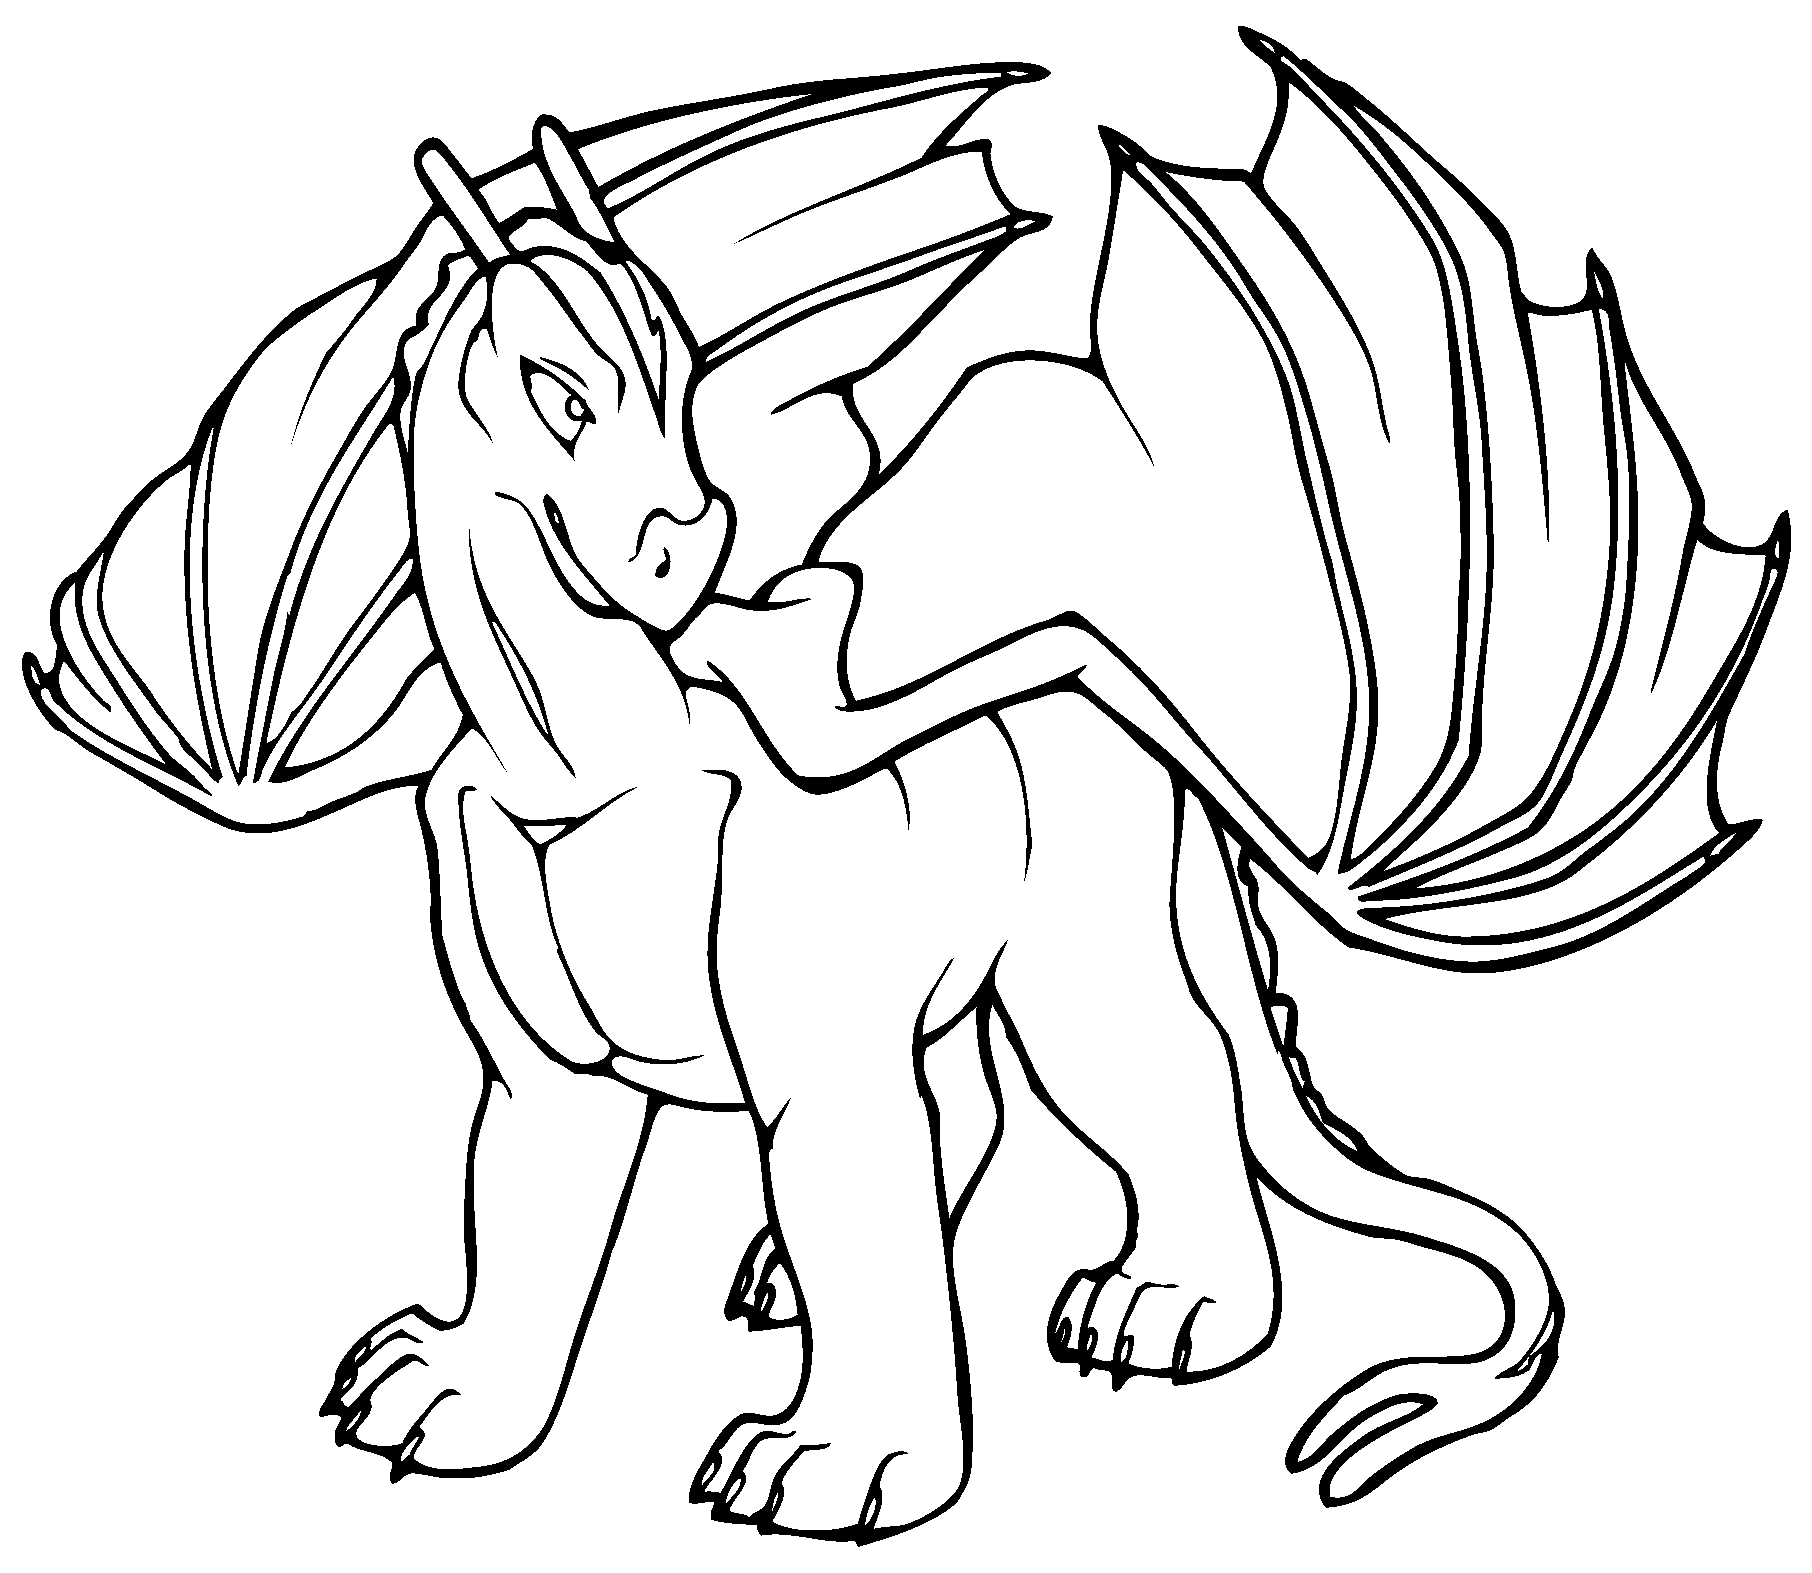 cute baby dragon coloring pages to print free printable dragon coloring pages for kids - Dragon Coloring Books